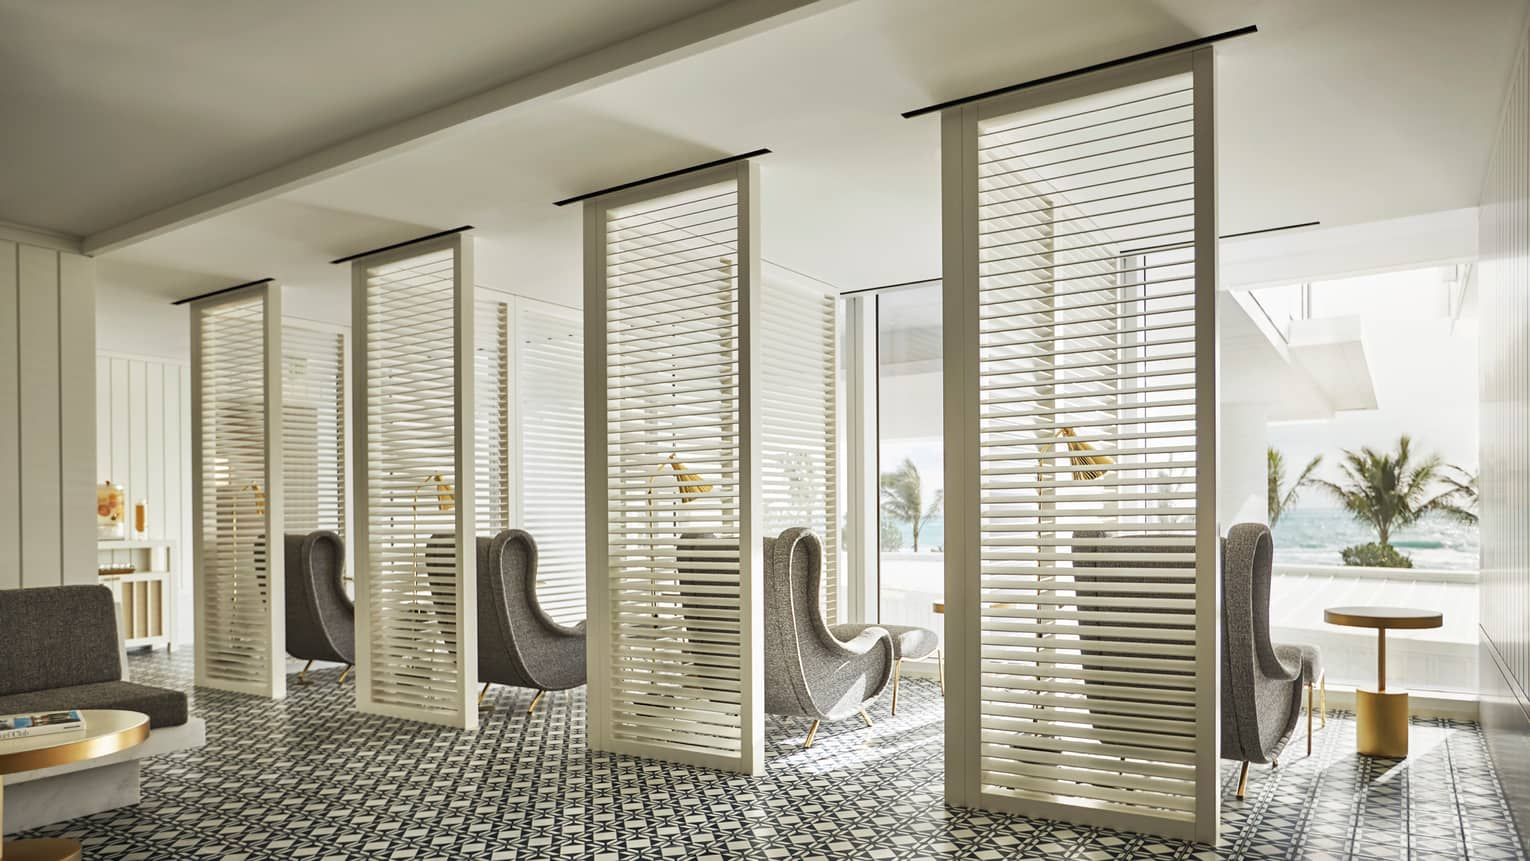 Oceanfront spa and wellness center. Retro-style grey arm chairs in front of window overlooking ocean